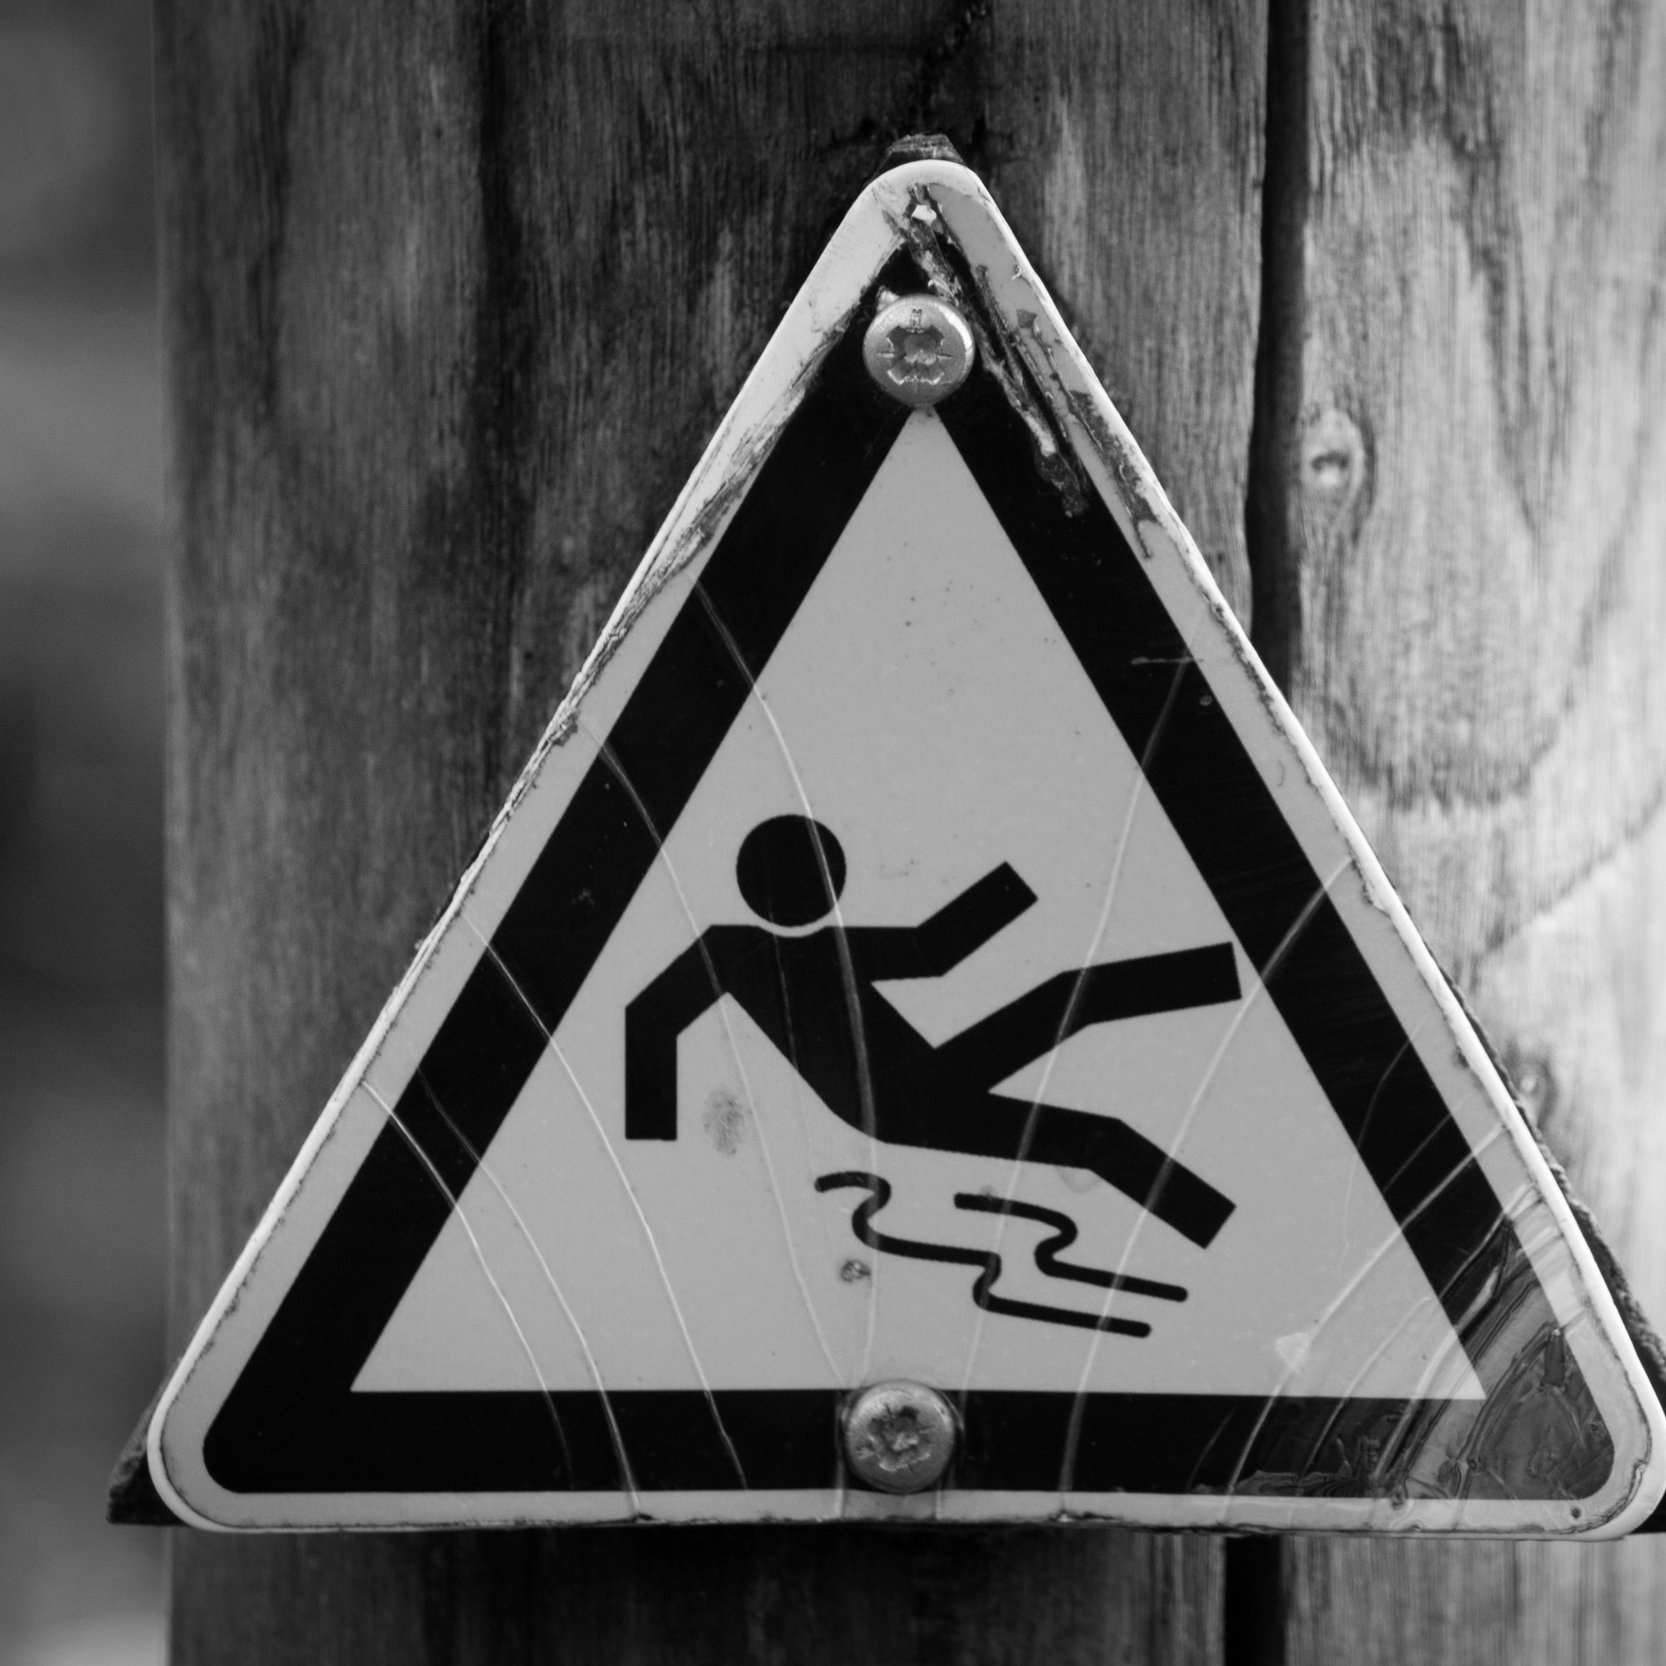 Slip and Fall Accidents - Slip and fall accidents are highly evidence dependent and require a skilled knowledge of evidentiary collection techniques. The former prosecutors at Horlacher Necci learned these techniquest under fire and will put you in the best possible position to recover faily for your injuries and your suffering.